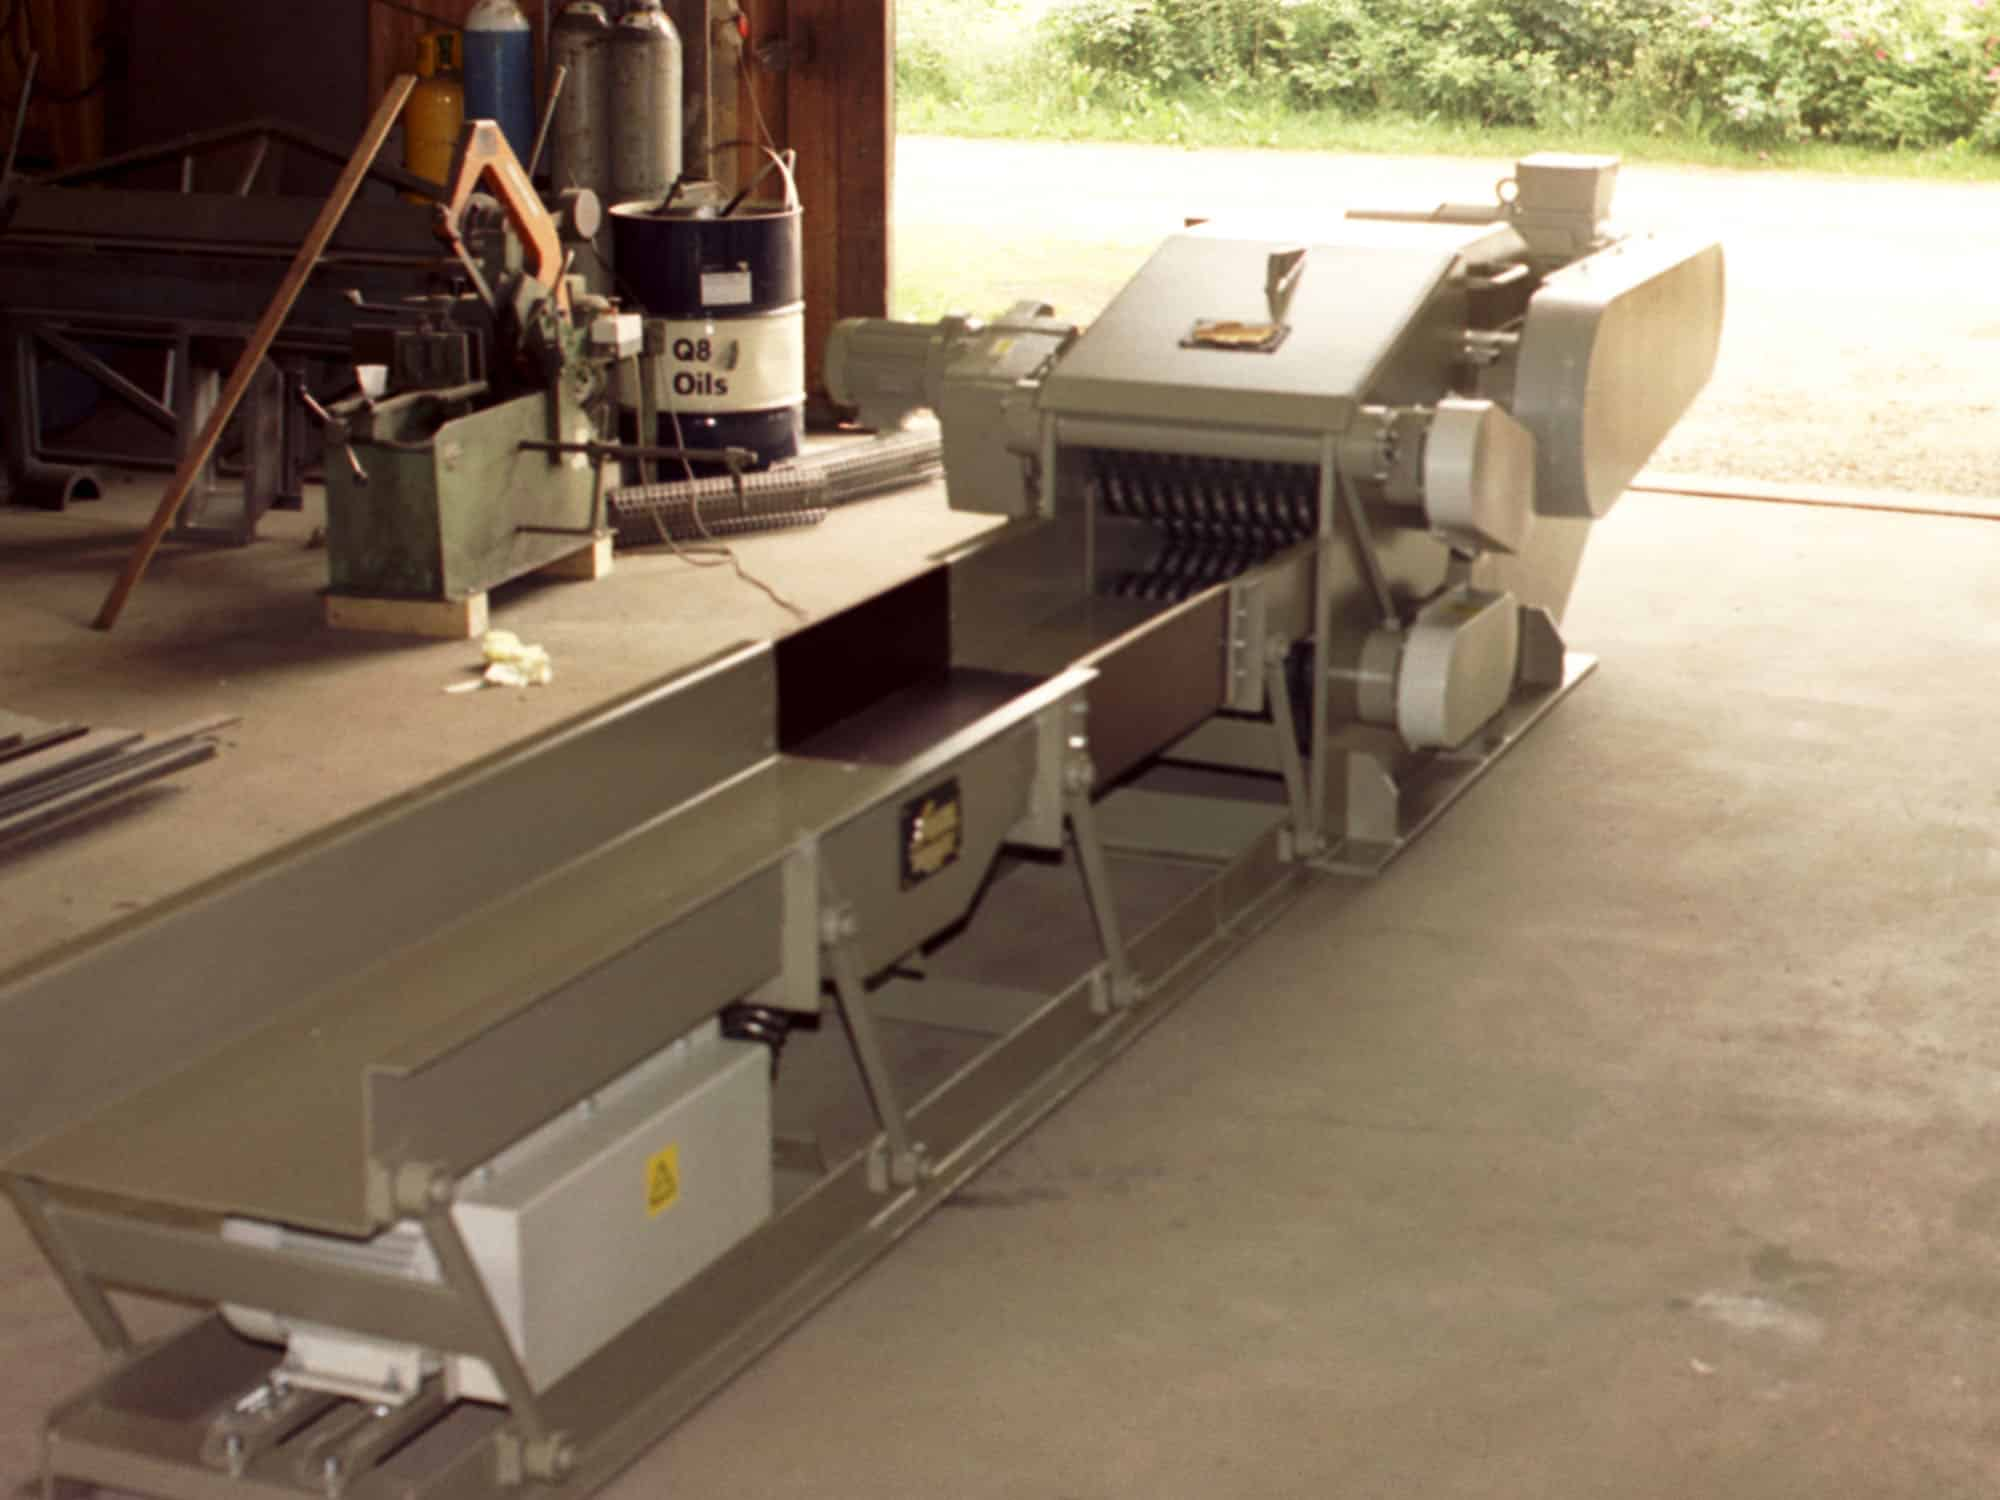 Scanhugger wood chipper with vibration conveyor with oil-drum in background